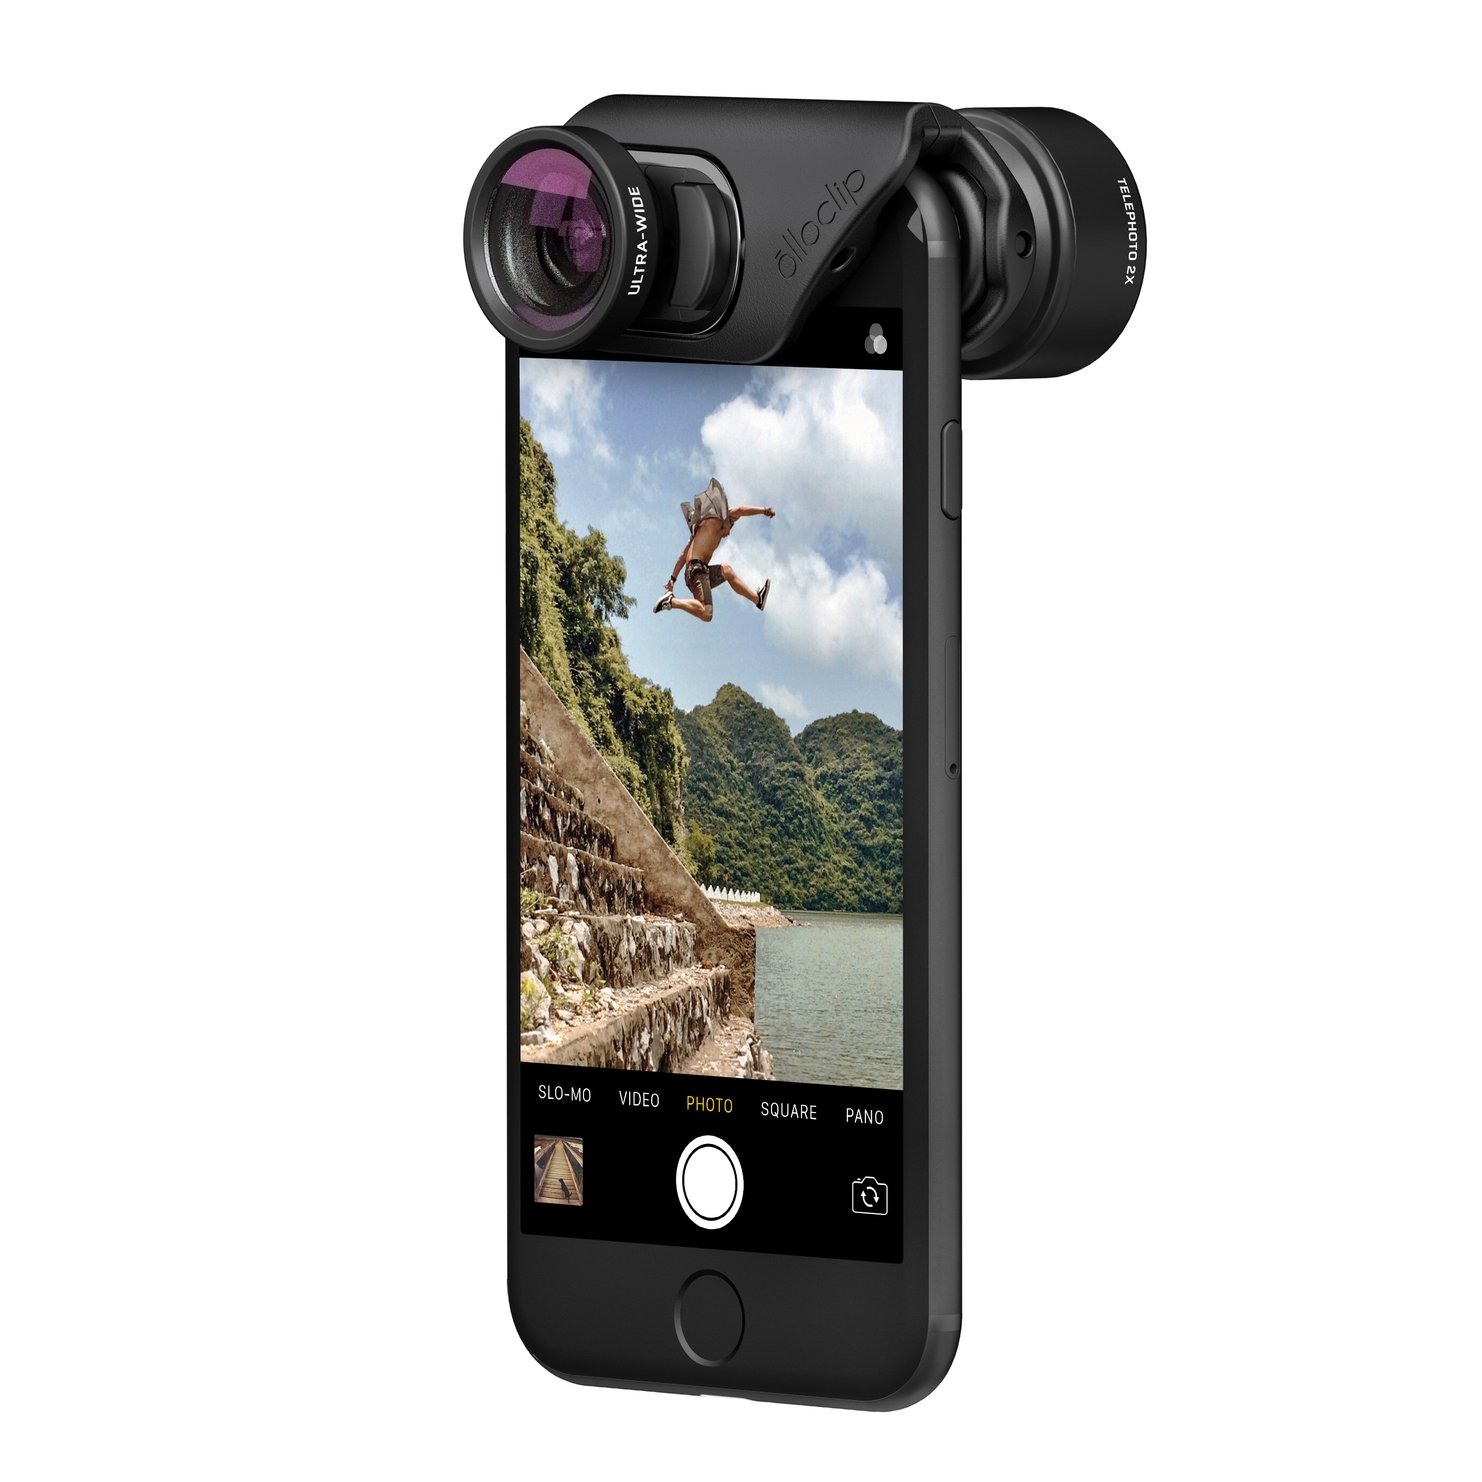 olloclip - ACTIVE LENS SET for iPhone 8/8 Plus & iPhone 7/7 Plus - TELEPHOTO & ULTRA-WIDE Premium Glass Lenses by olloclip